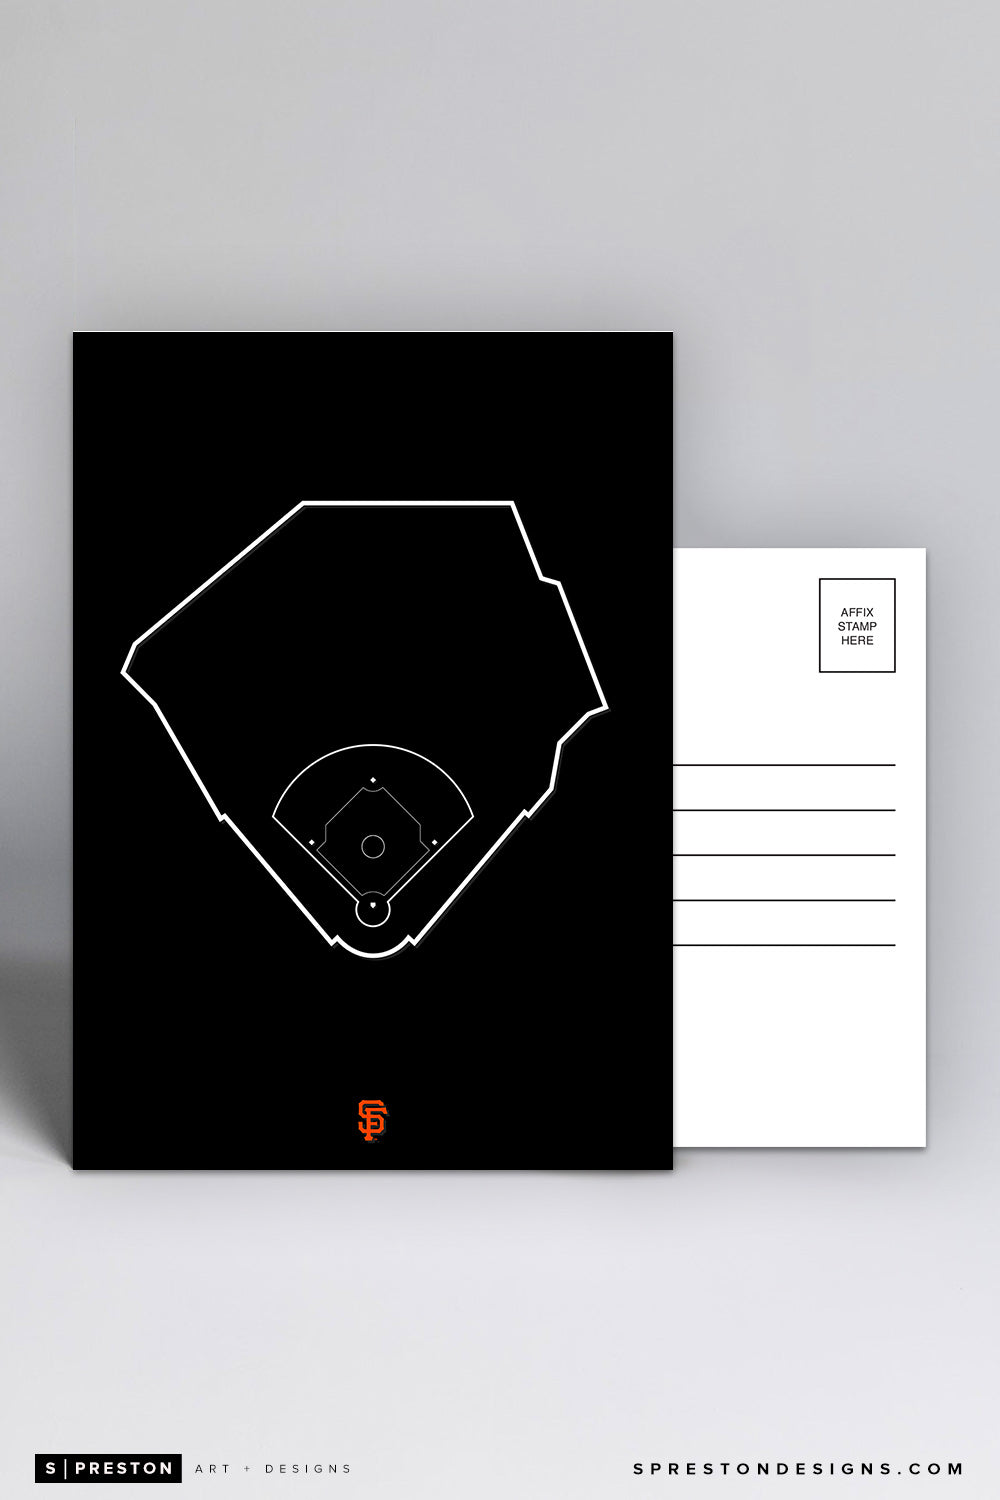 Oracle Park - Outline Ballparks Postcard San Francisco Giants - S. Preston